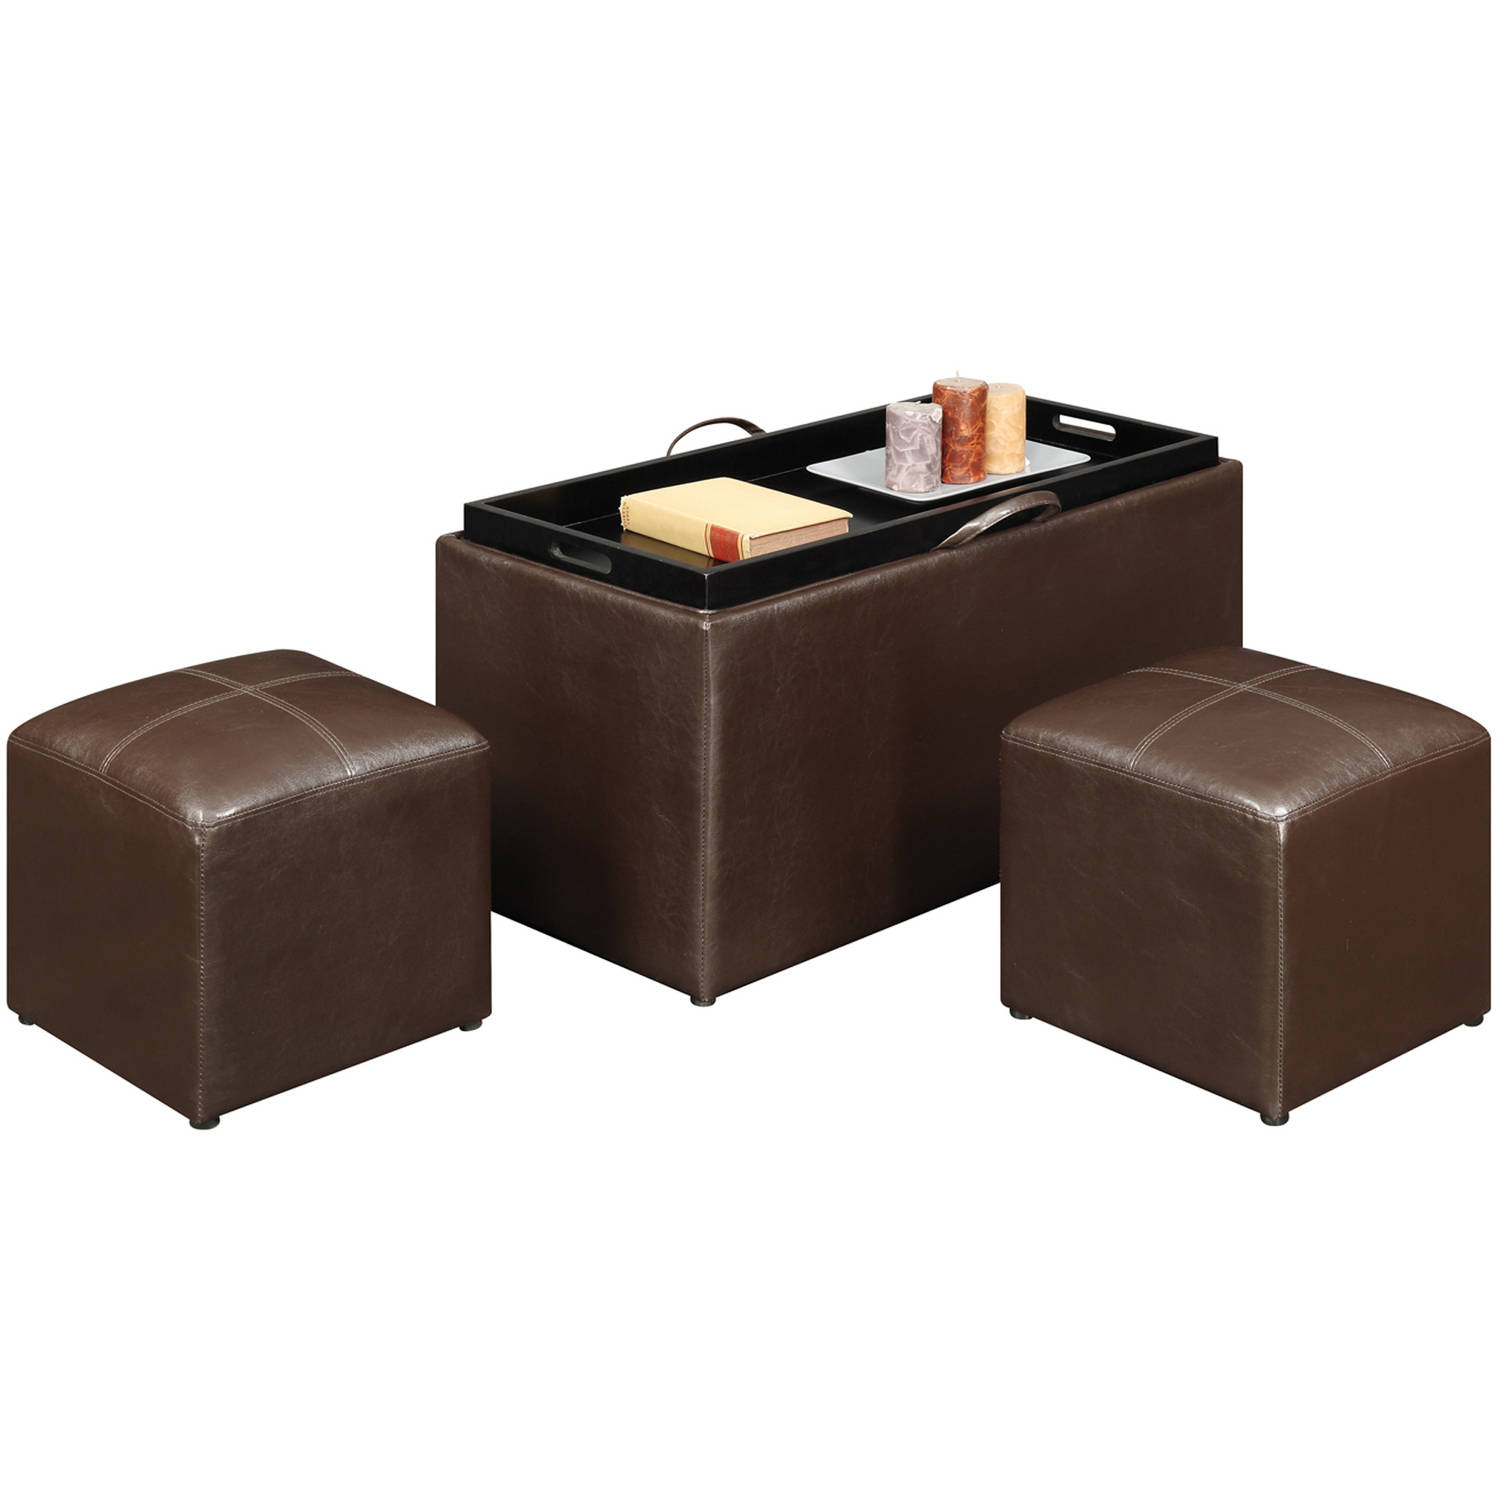 Designs4Comfort Faux Leather Storage Bench With 2 Side Ottomans, Multiple  Colors Image 3 Of 8